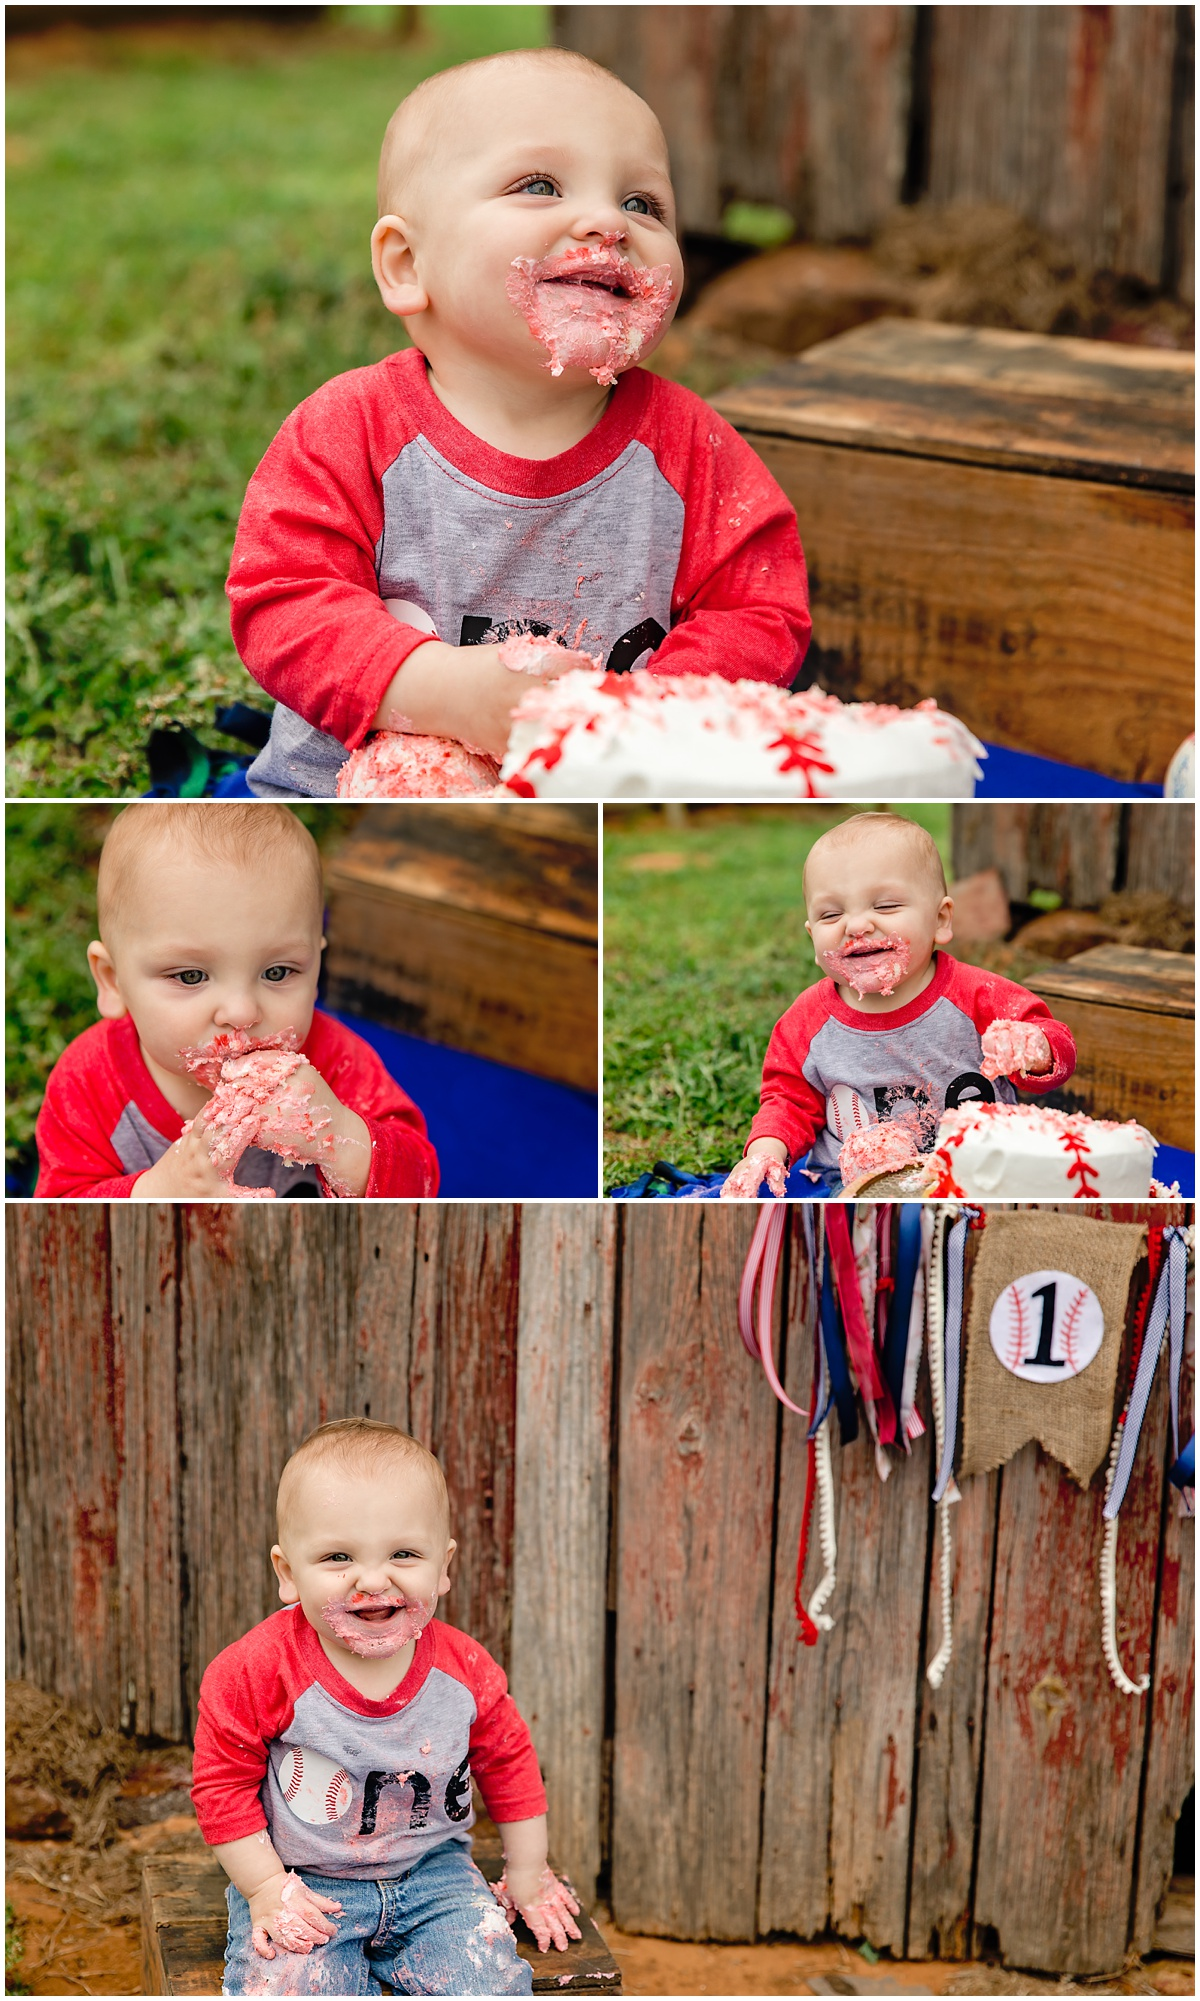 Cake-Smash-Baseball-Theme-First-Birthday-Carly-Barton-Photography_0007.jpg